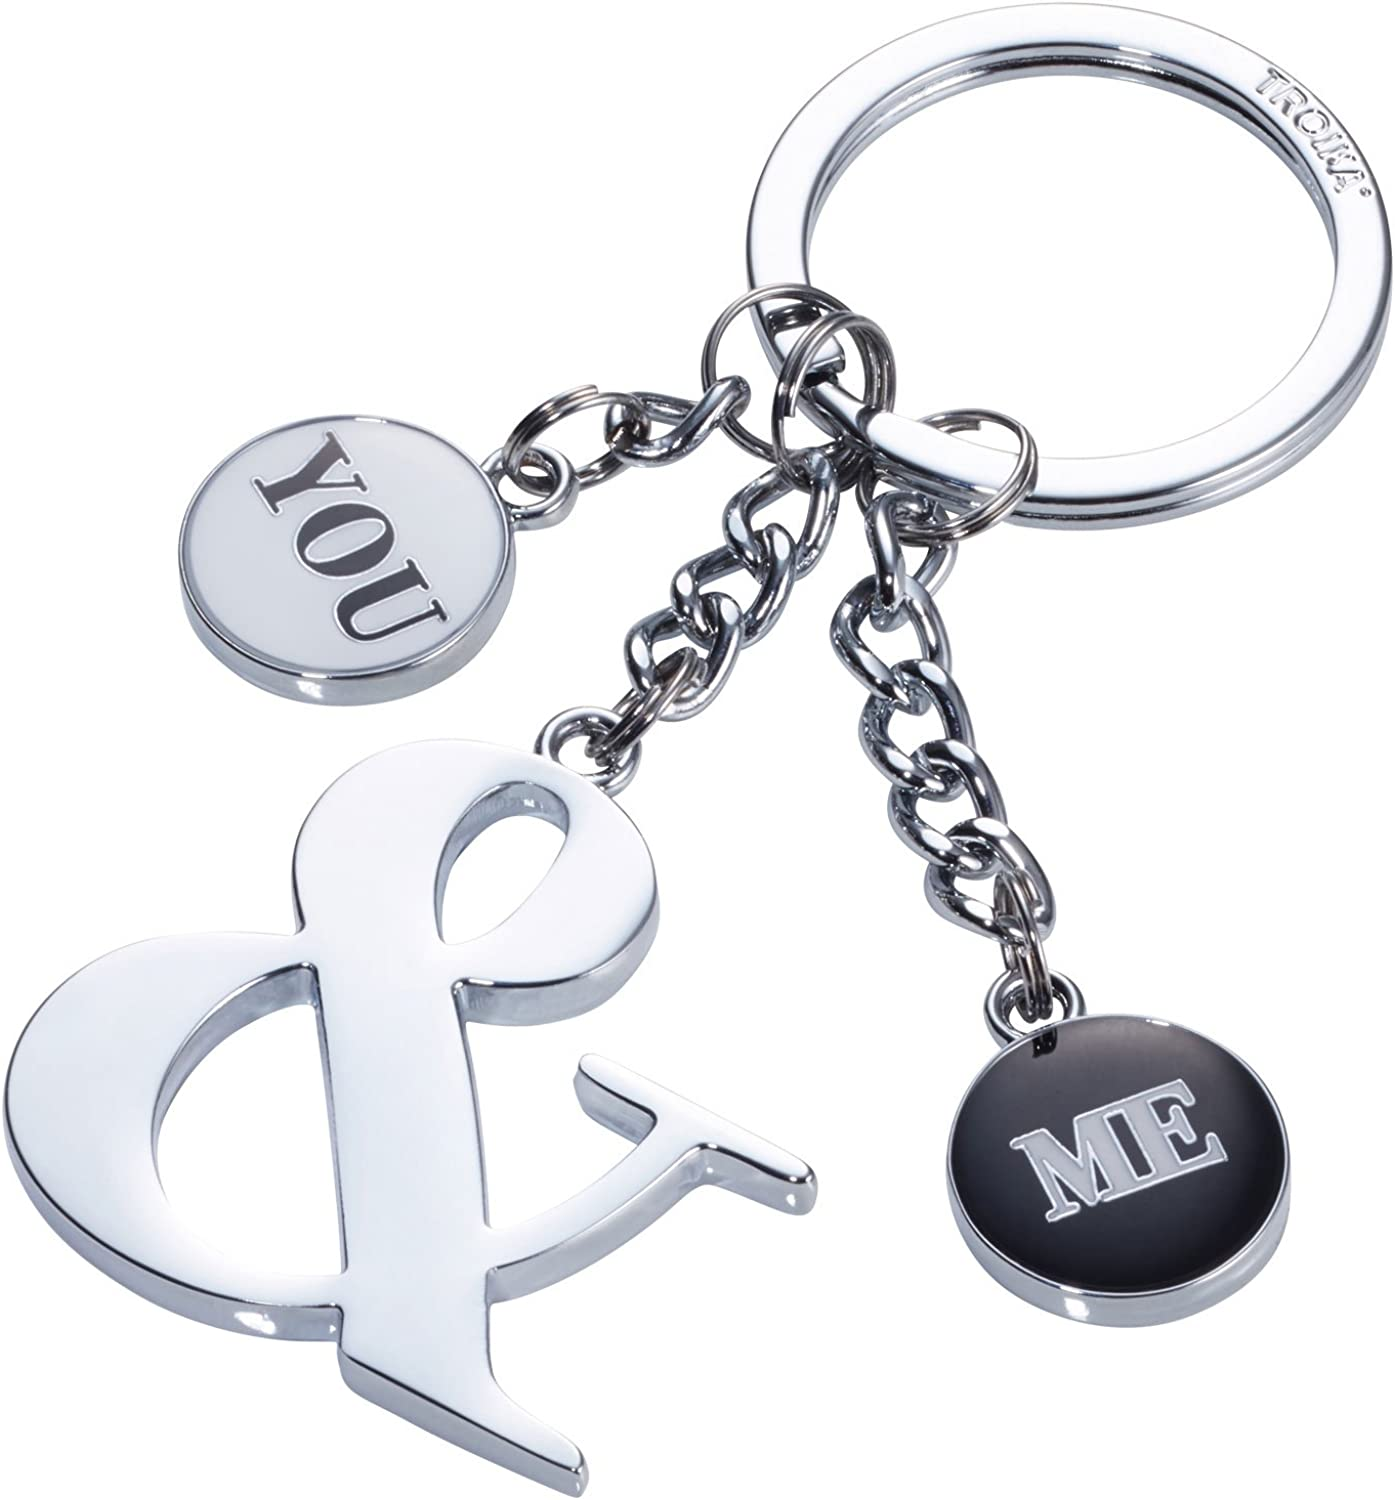 TROIKA YOU & ME – KR17-37/CH – Keyring with 3 charms – For lovers, couples, pairs, or best friends – cast metal/enamel – TROIKA-original